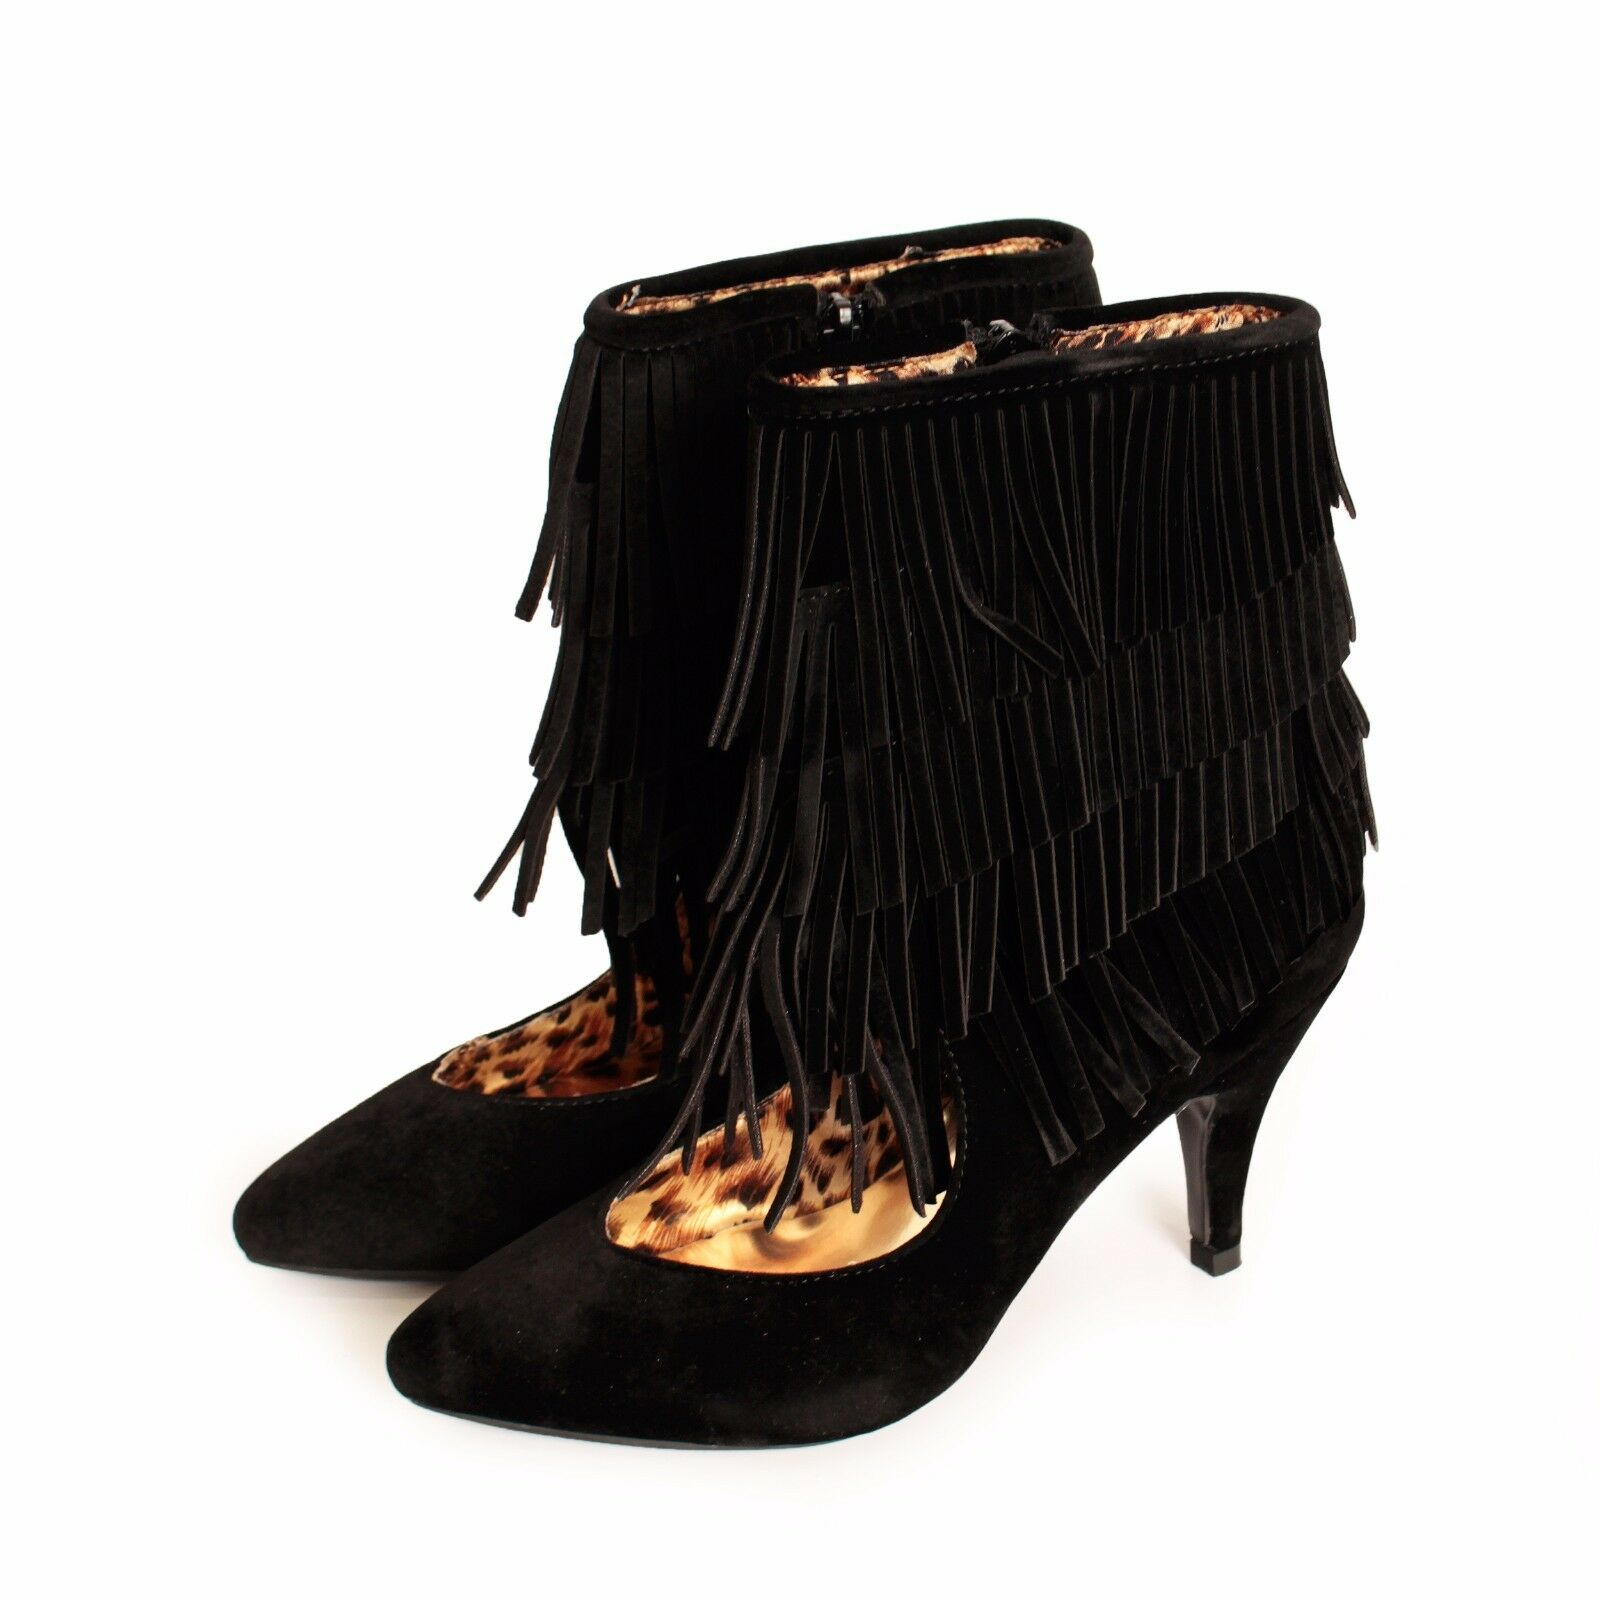 Ladies High Heel Fringe Tassel Toe Womens Sandals Strappy Stiletto Shoes Sizes